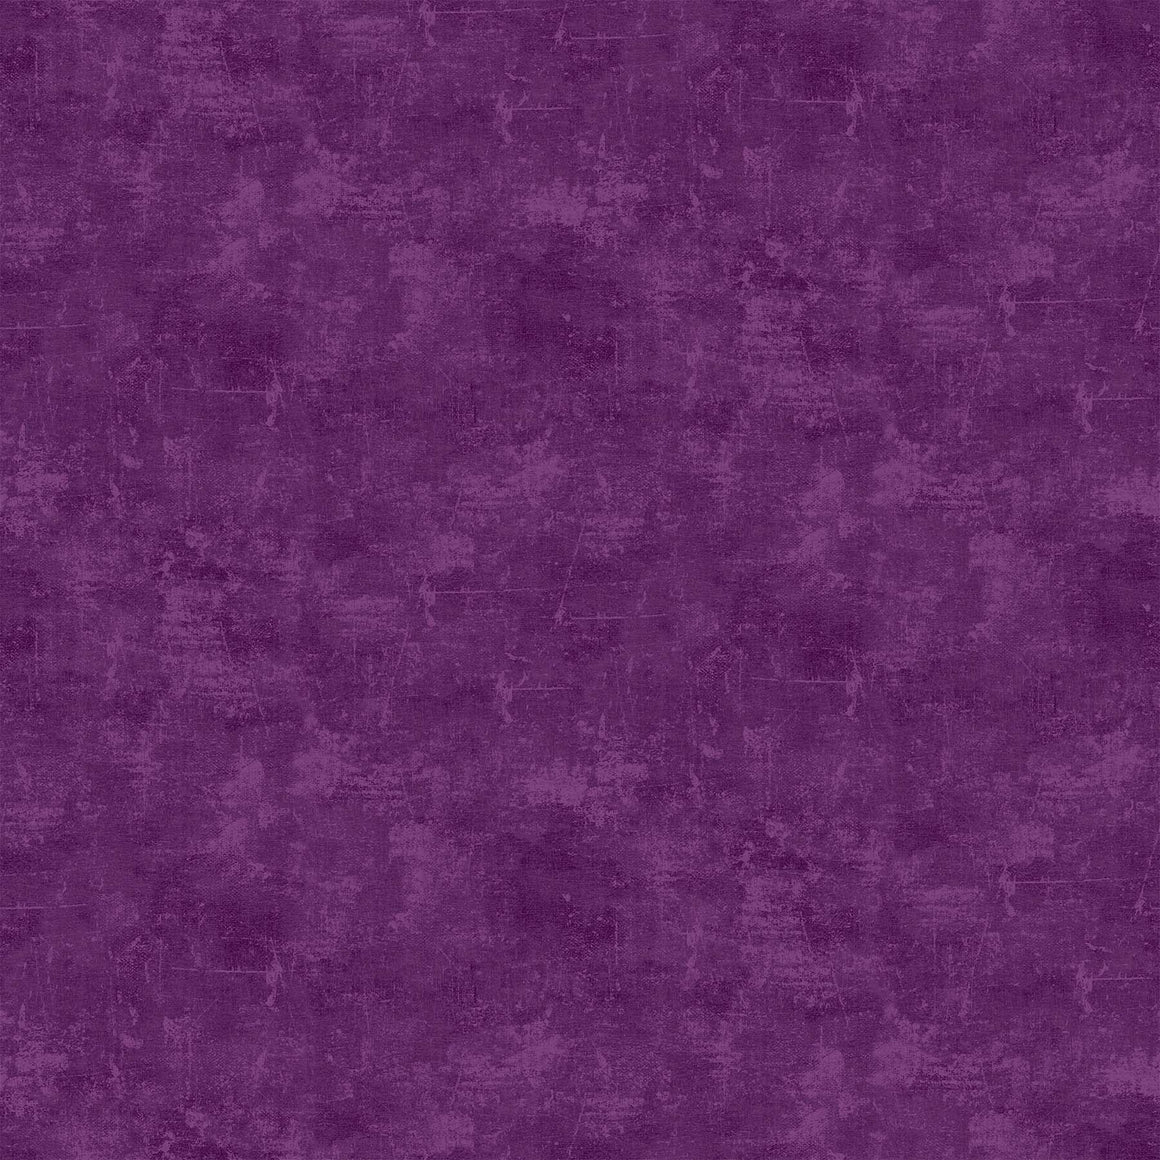 Bright Grape - Canvas Texture - 9030-86, Designer Fabric, Northcott, [variant_title] - Mad About Patchwork